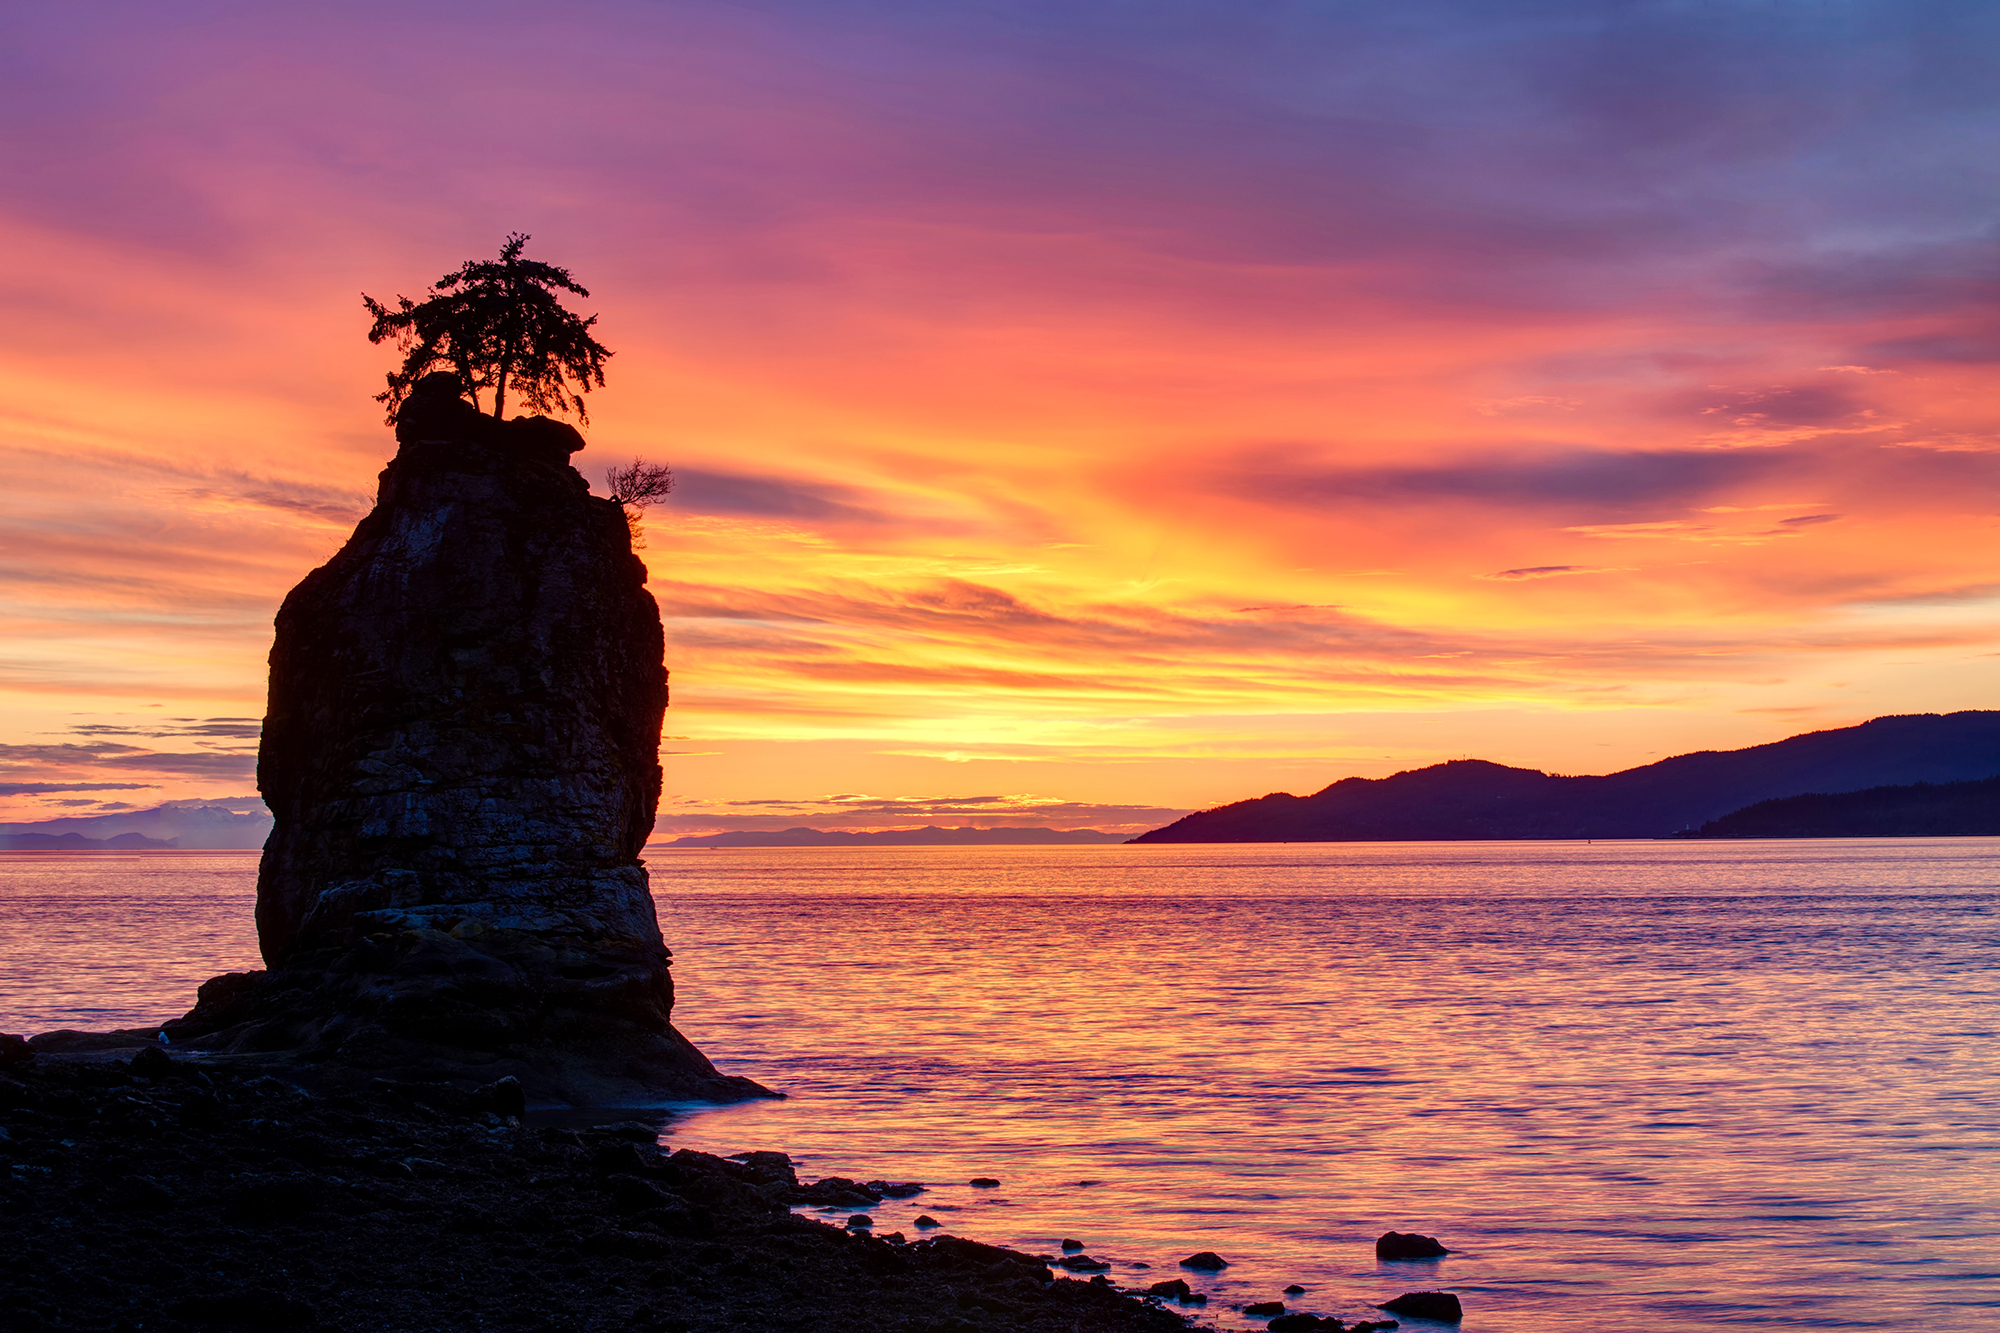 Sunset overlooking Stanley Park's Siwash Rock.